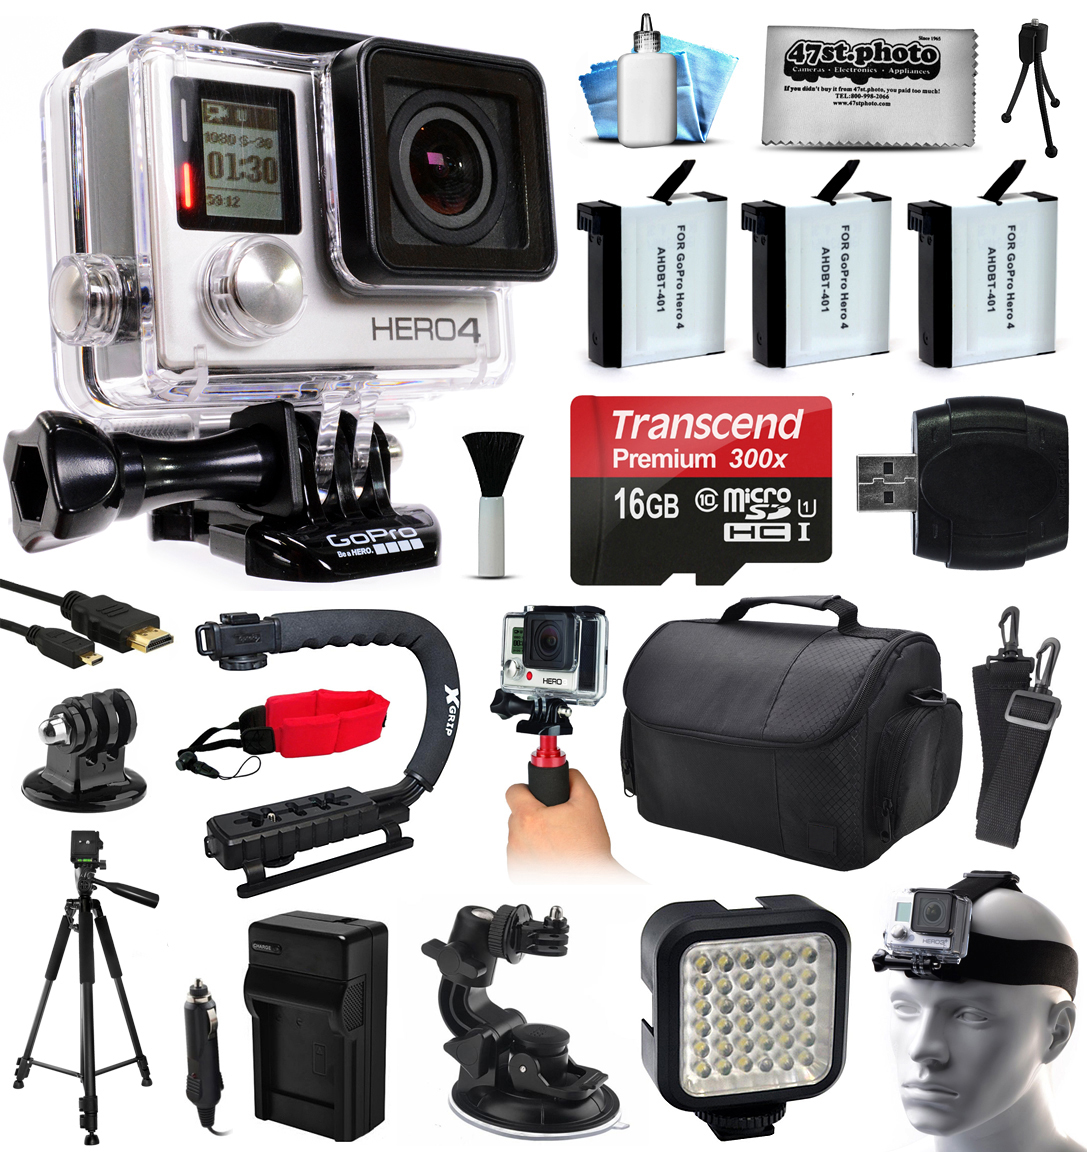 GoPro HERO4 Silver Edition 4K Action Camera with 16GB MicroSD, 3x Batteries, Charger, Card Reader, Large Case, Action Handle, Tripod, Car Mount, LED Light, Helmet Strap, Dust Cleaning Kit (CHDHY-401)